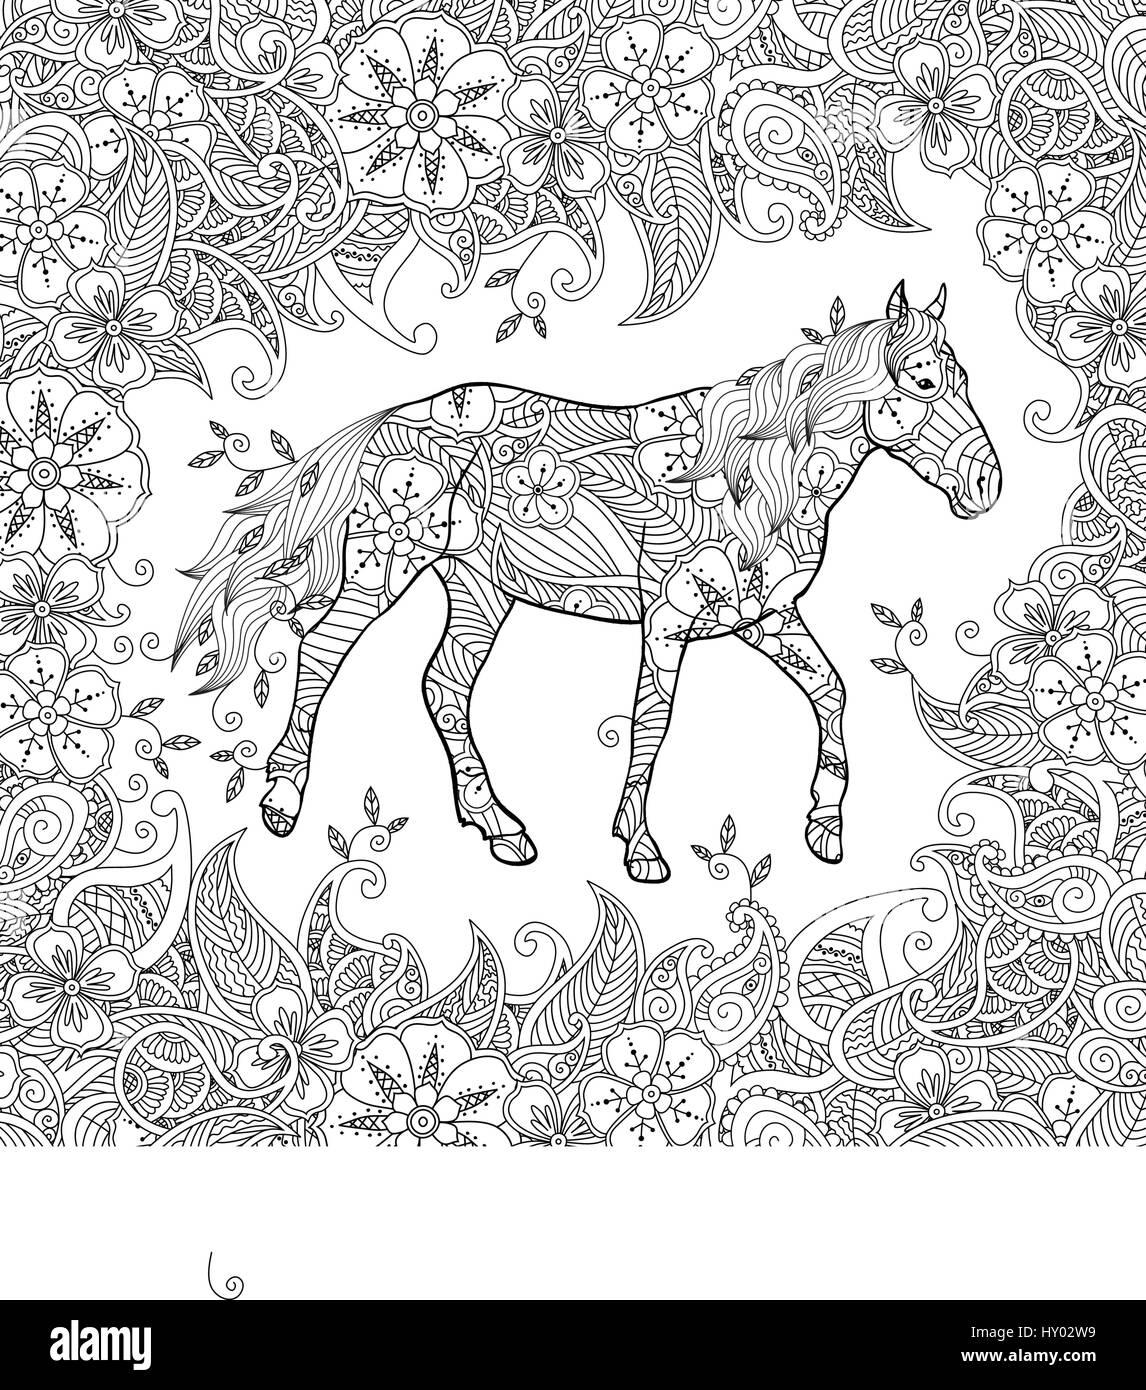 Coloring Page In Zentangle Inspired Style Running Horse On